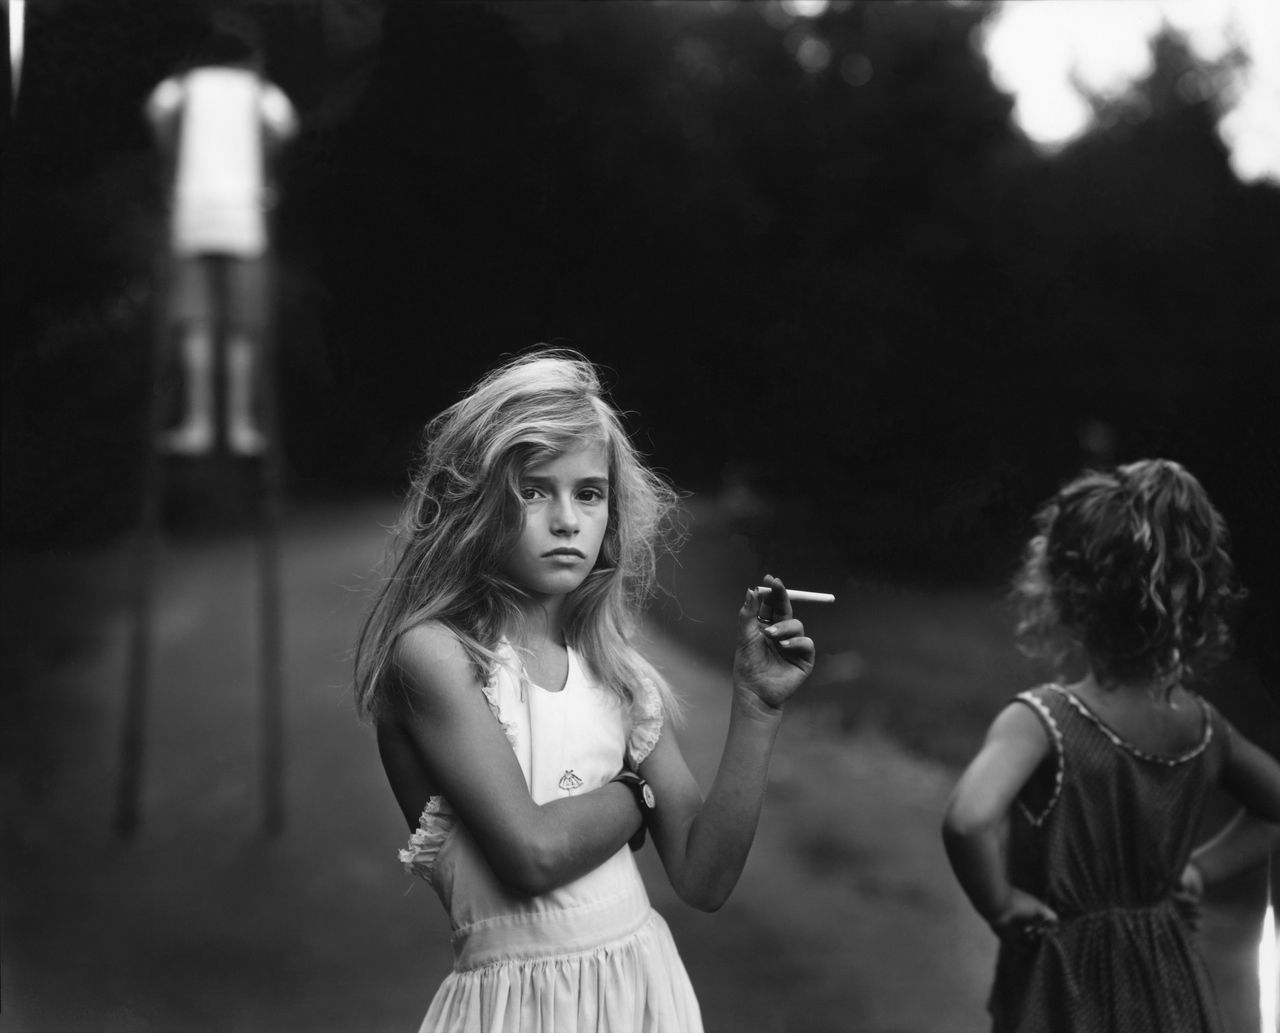 Sally mann one of the best photographers of all time